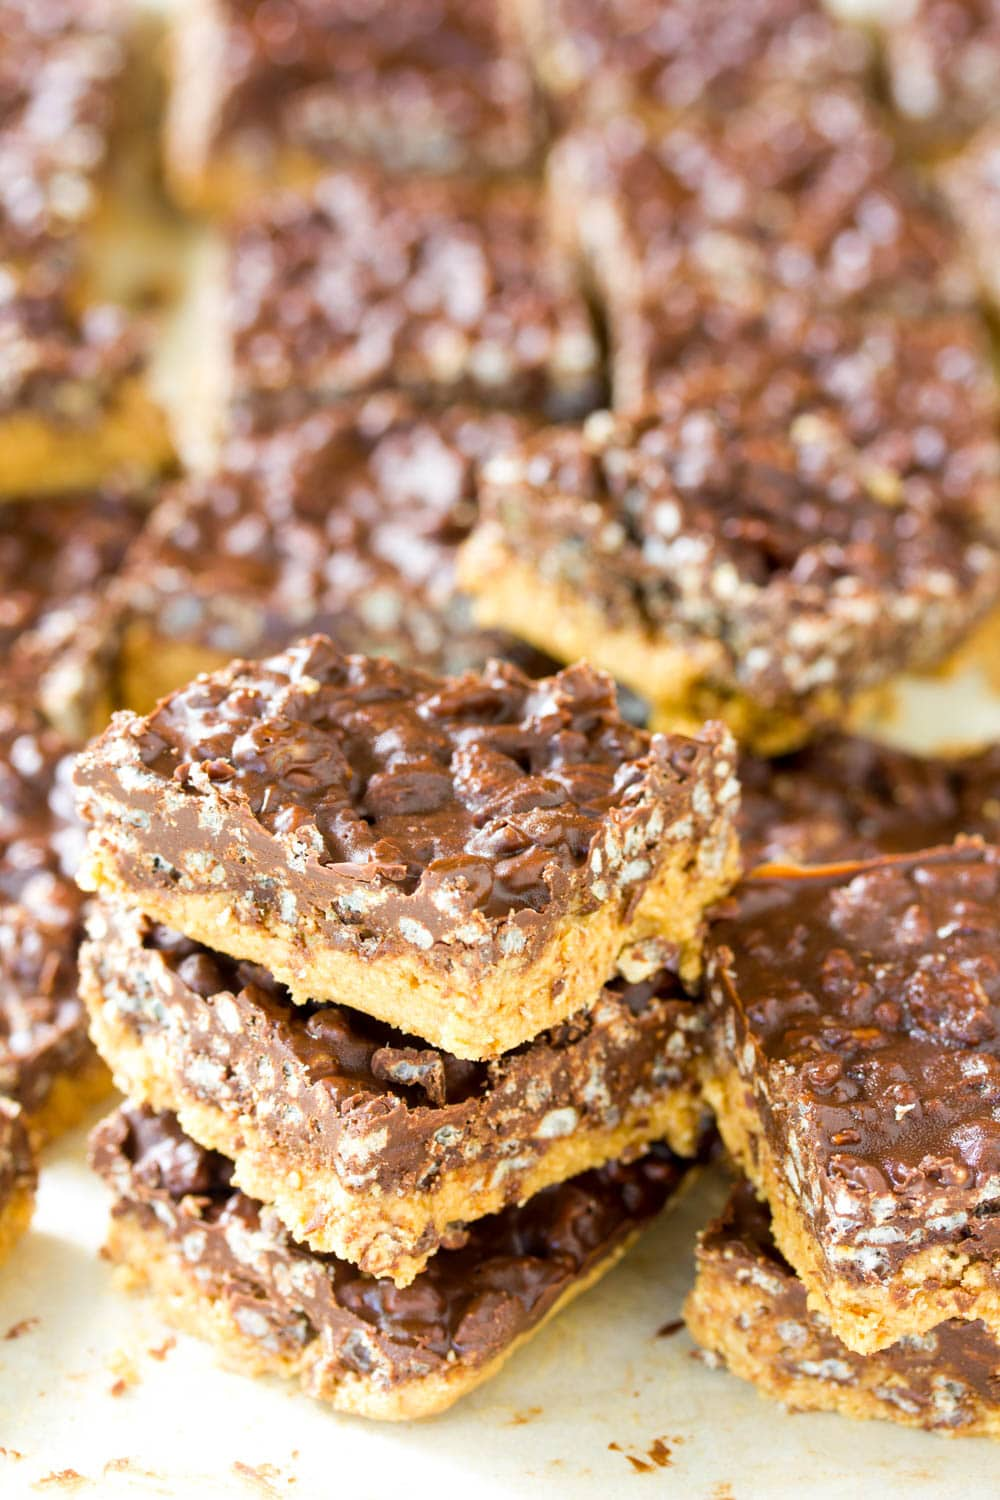 Crispy No-Bake Chocolate Peanut Butter Bars - A Spicy